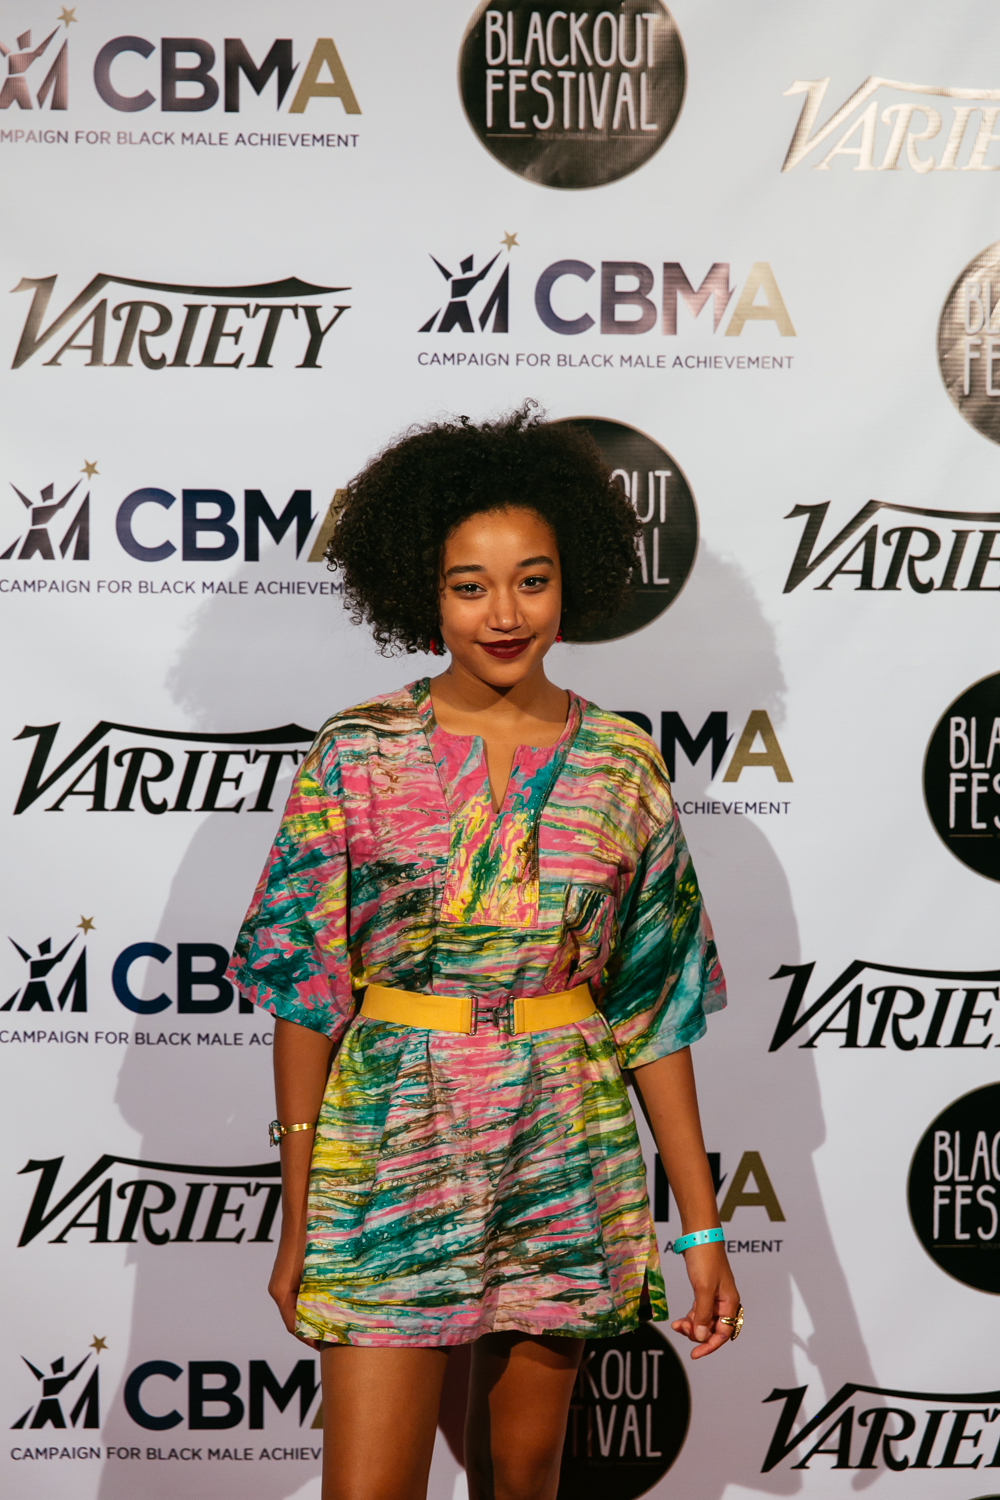 Amandla Stenberg at the Blackout Music & Film Festival (Aug 29) at The GRAMMY Museum in Los Angeles. / Photo: © Kayla Reefer, SUSPEND Magazine.